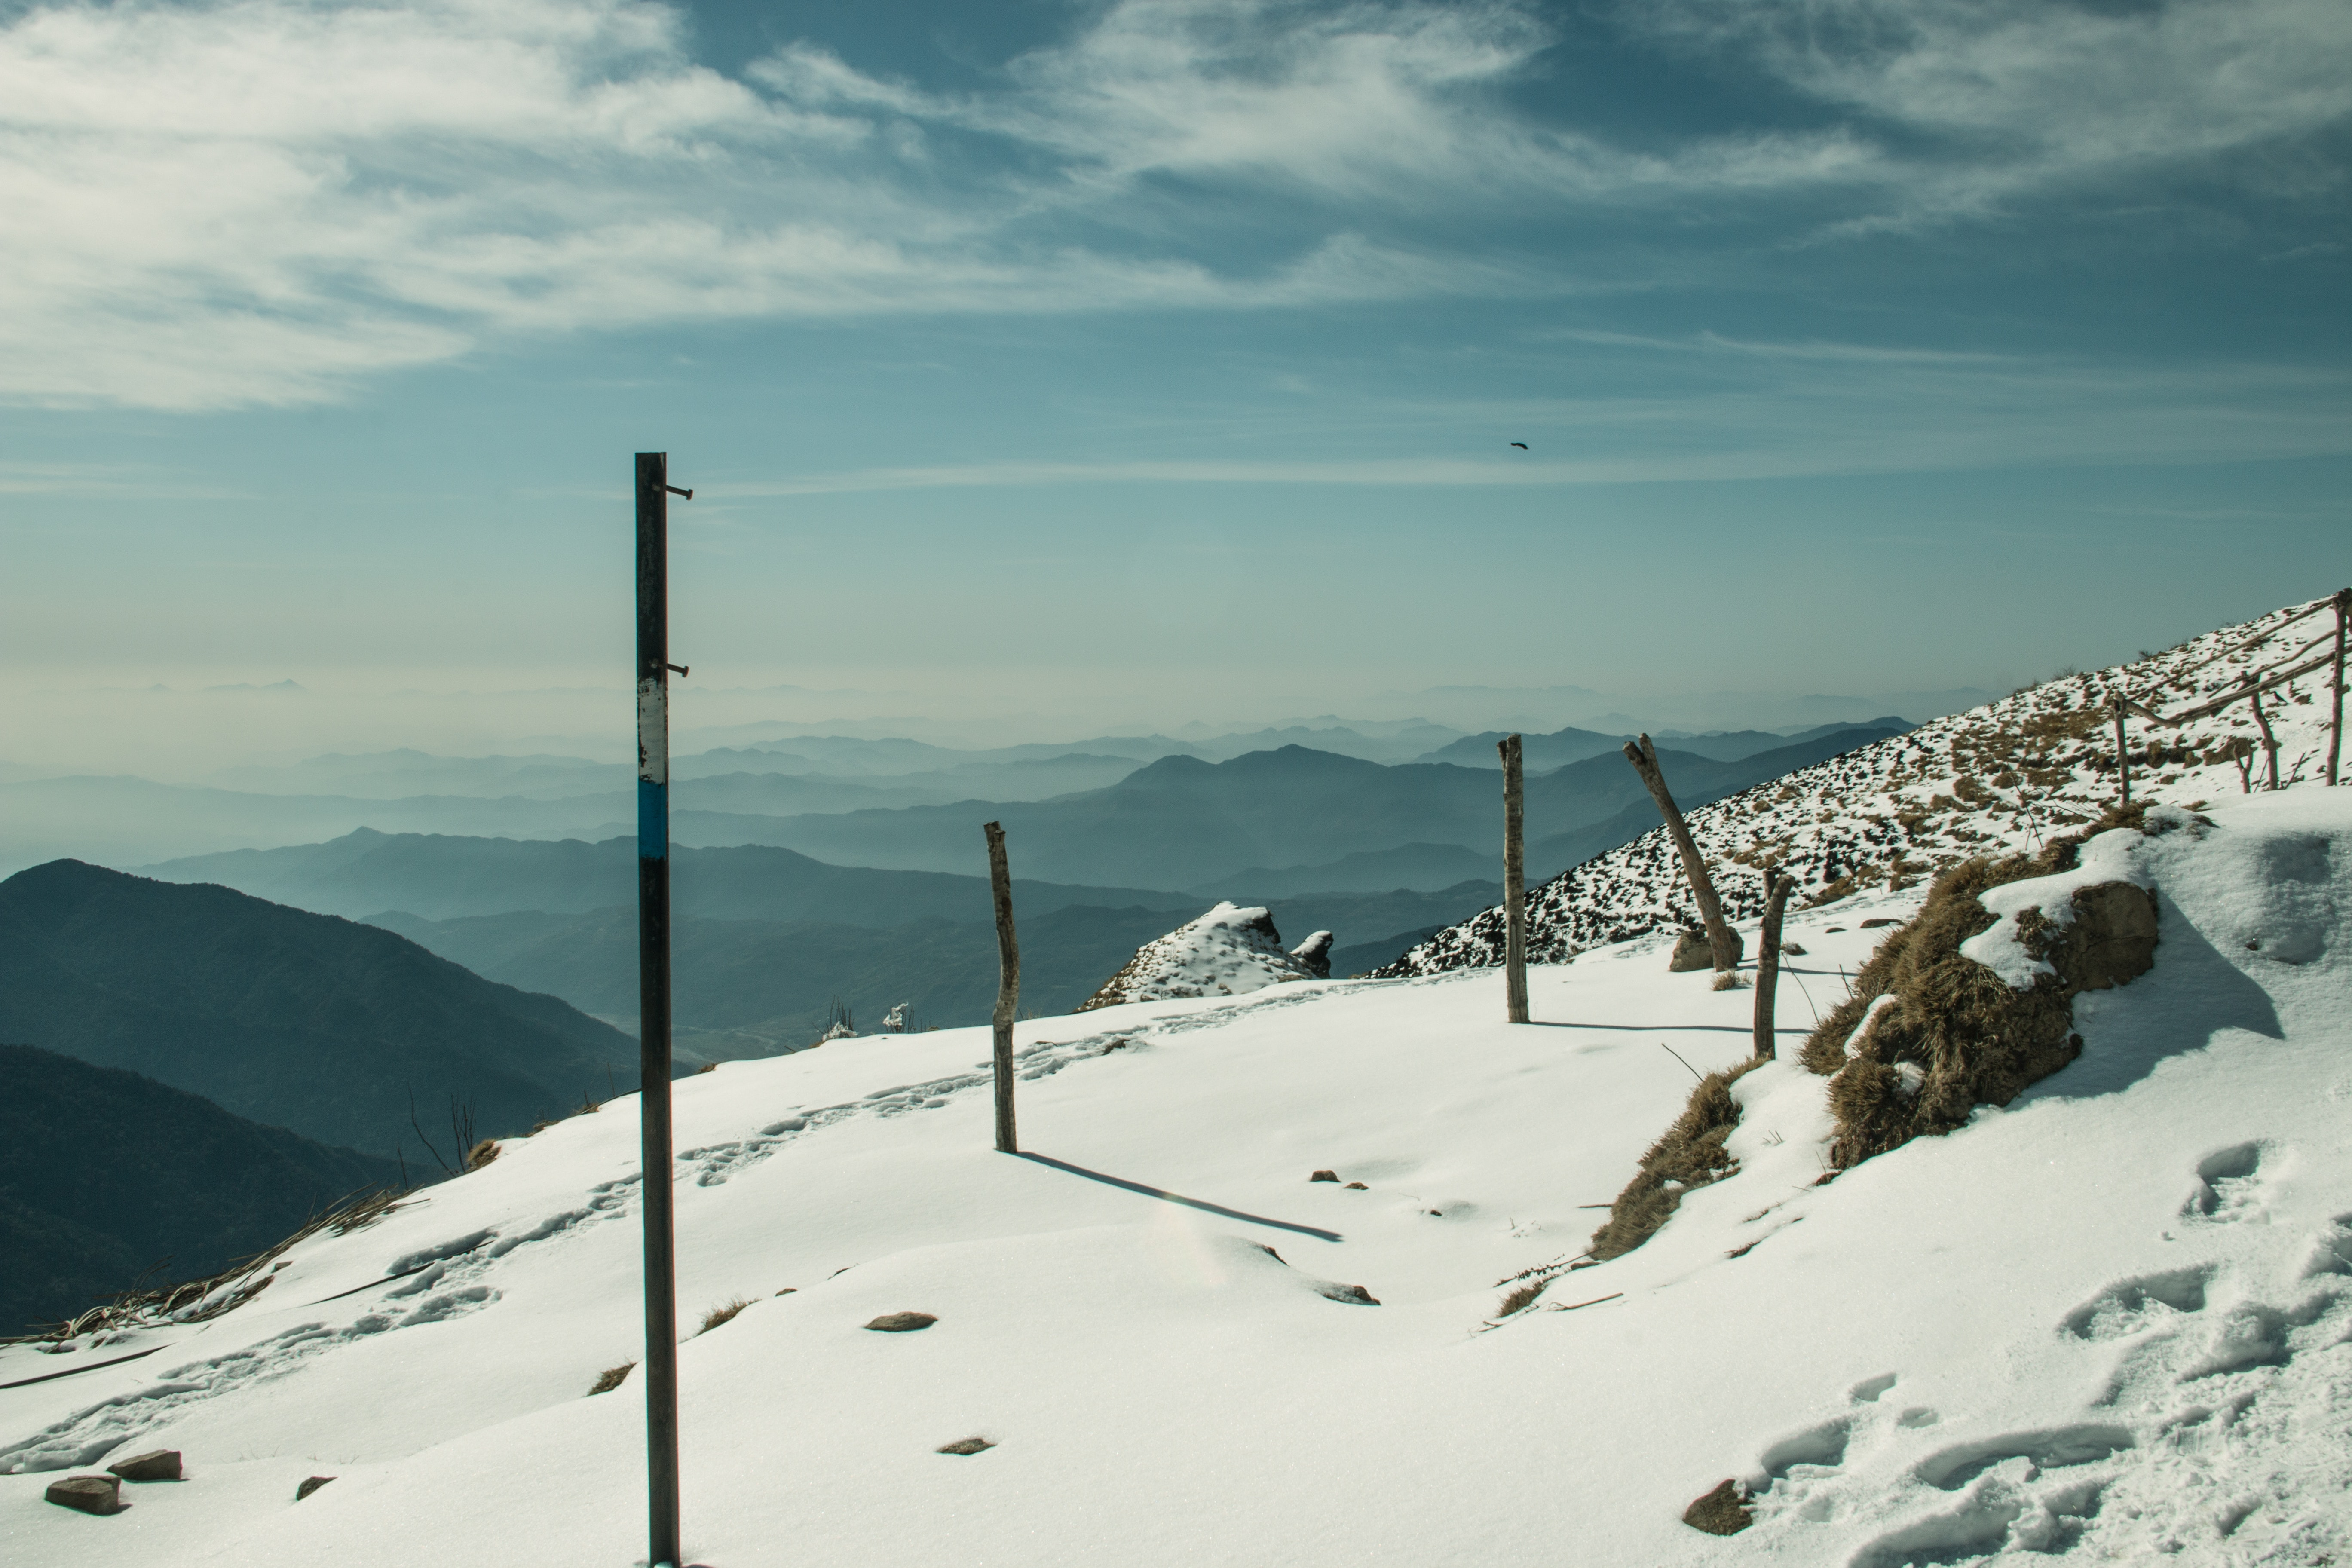 Mountain Trail Covered by Snow, Altitude, Nature, Winter, Weather, HQ Photo